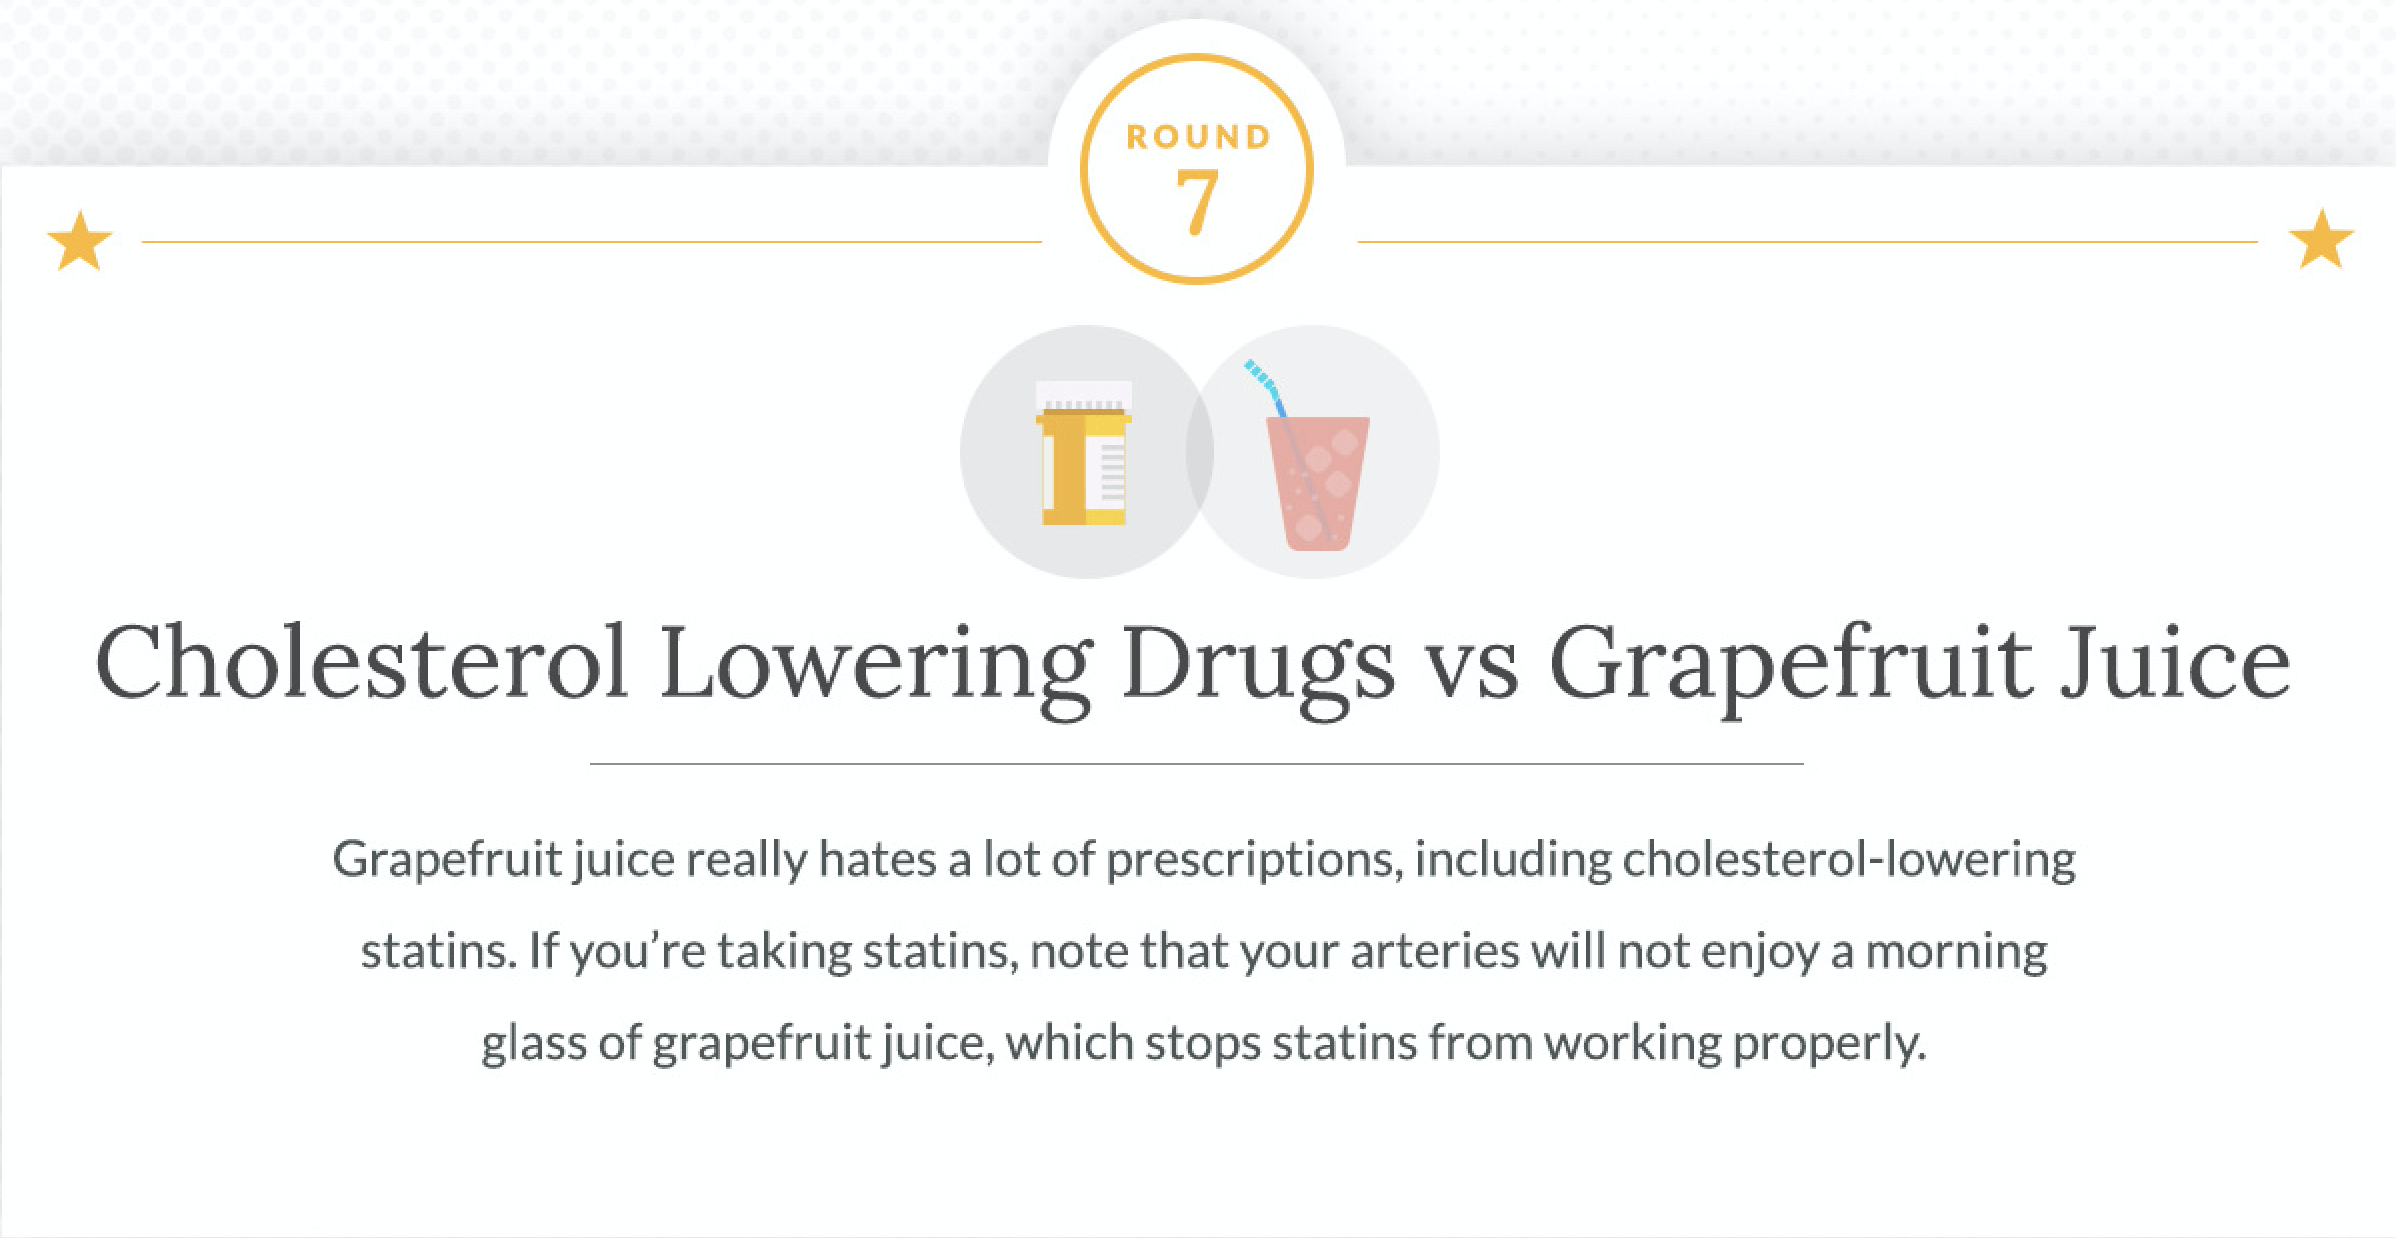 Cholesterol Lowering Drugs and Grapefruit Juice